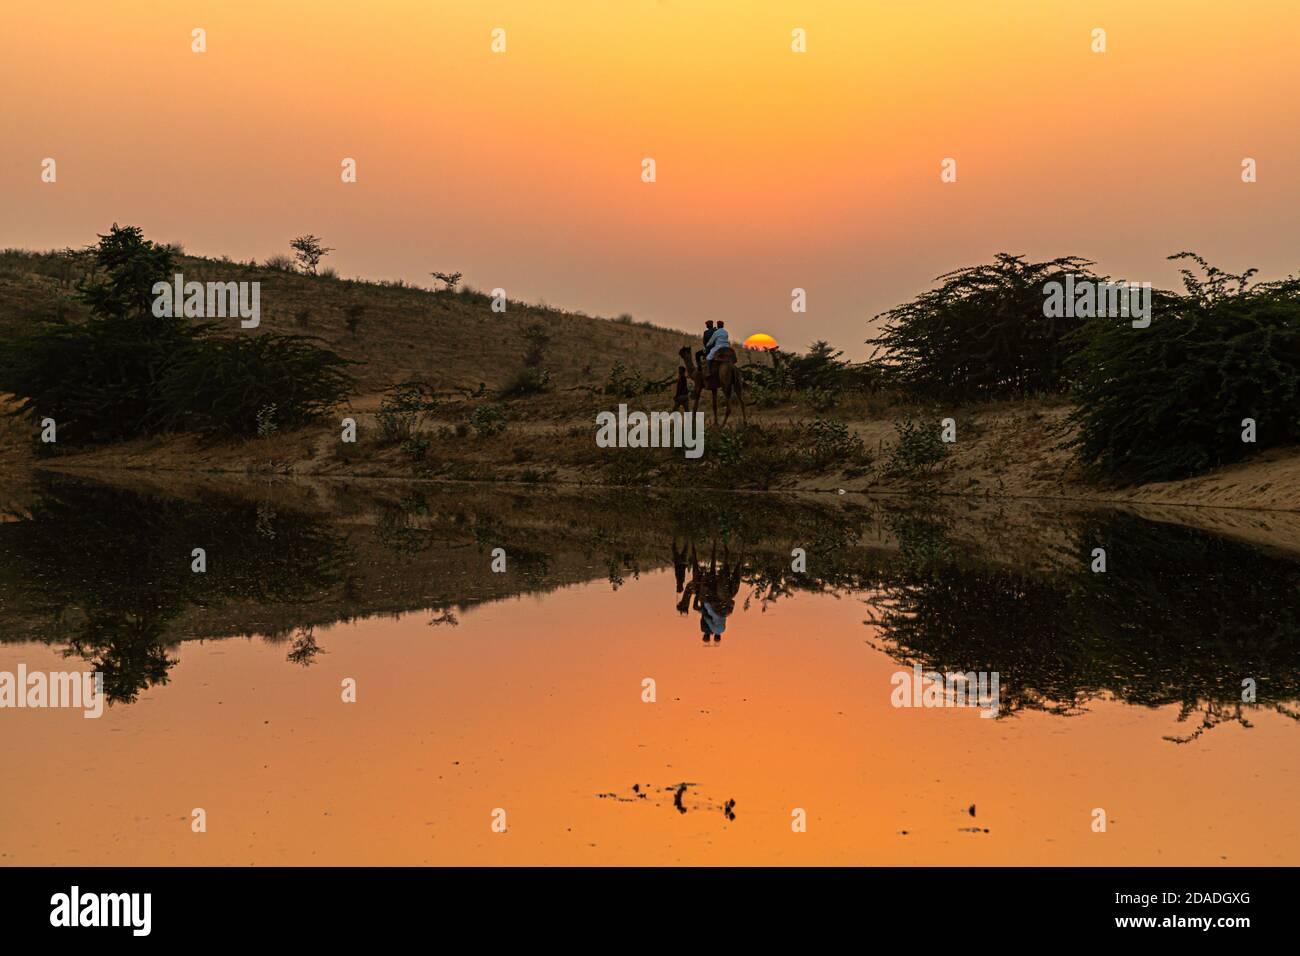 view of beautiful sunset and reflection of camel in the pond. Stock Photo